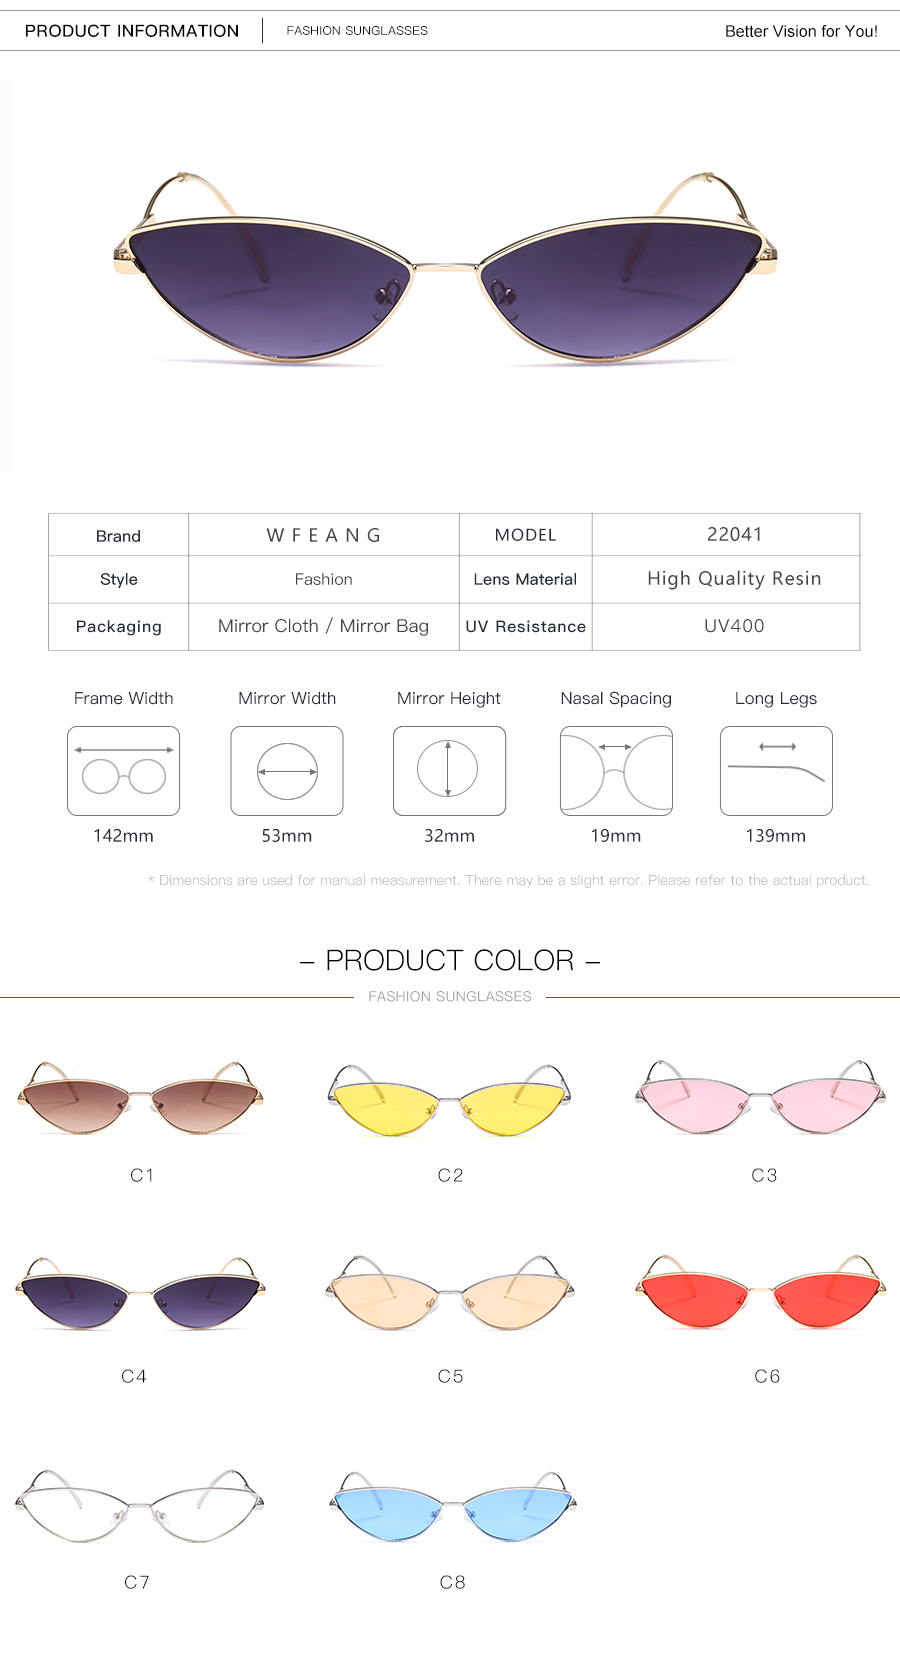 9eb690c3129f WFEANG Sunglasses Women Cat Eye Luxury Brand Designer Sun Glasses ...